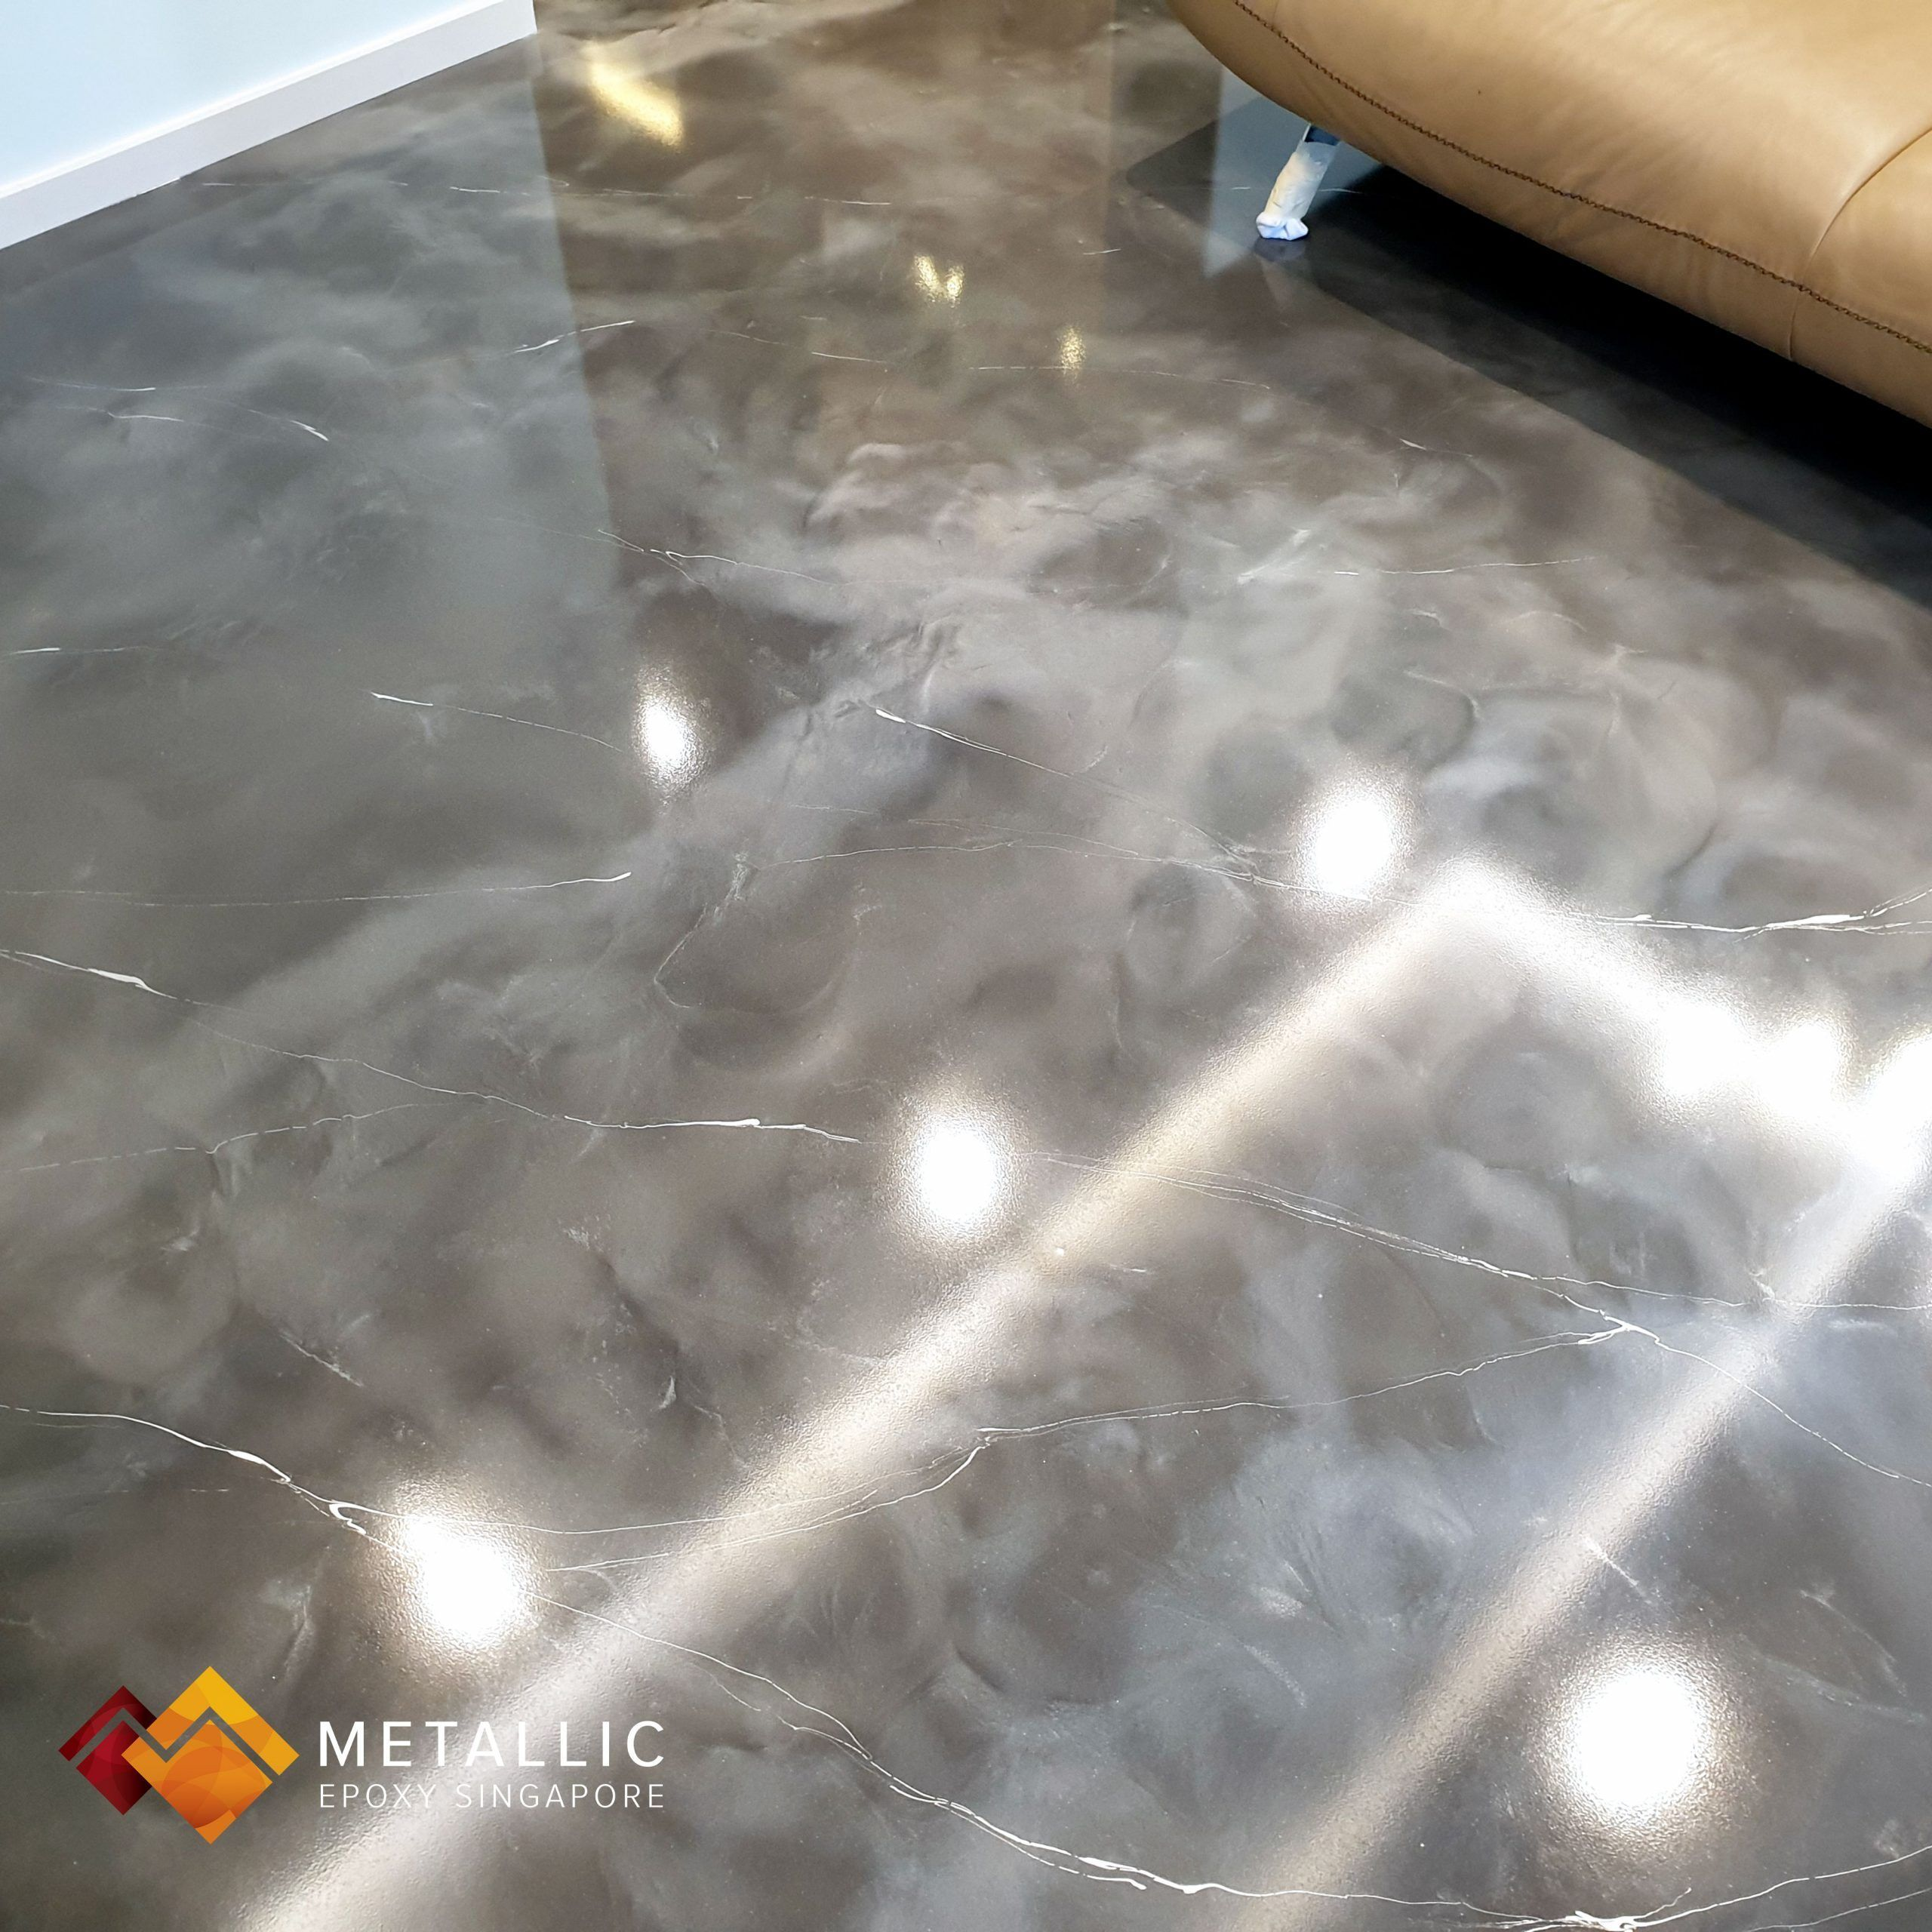 Metallic Epoxy Singapore Silver Base with Chrome Silver Marble Veins Living Room...#base #chrome #epoxy #living #marble #metallic #room #silver #singapore #veins